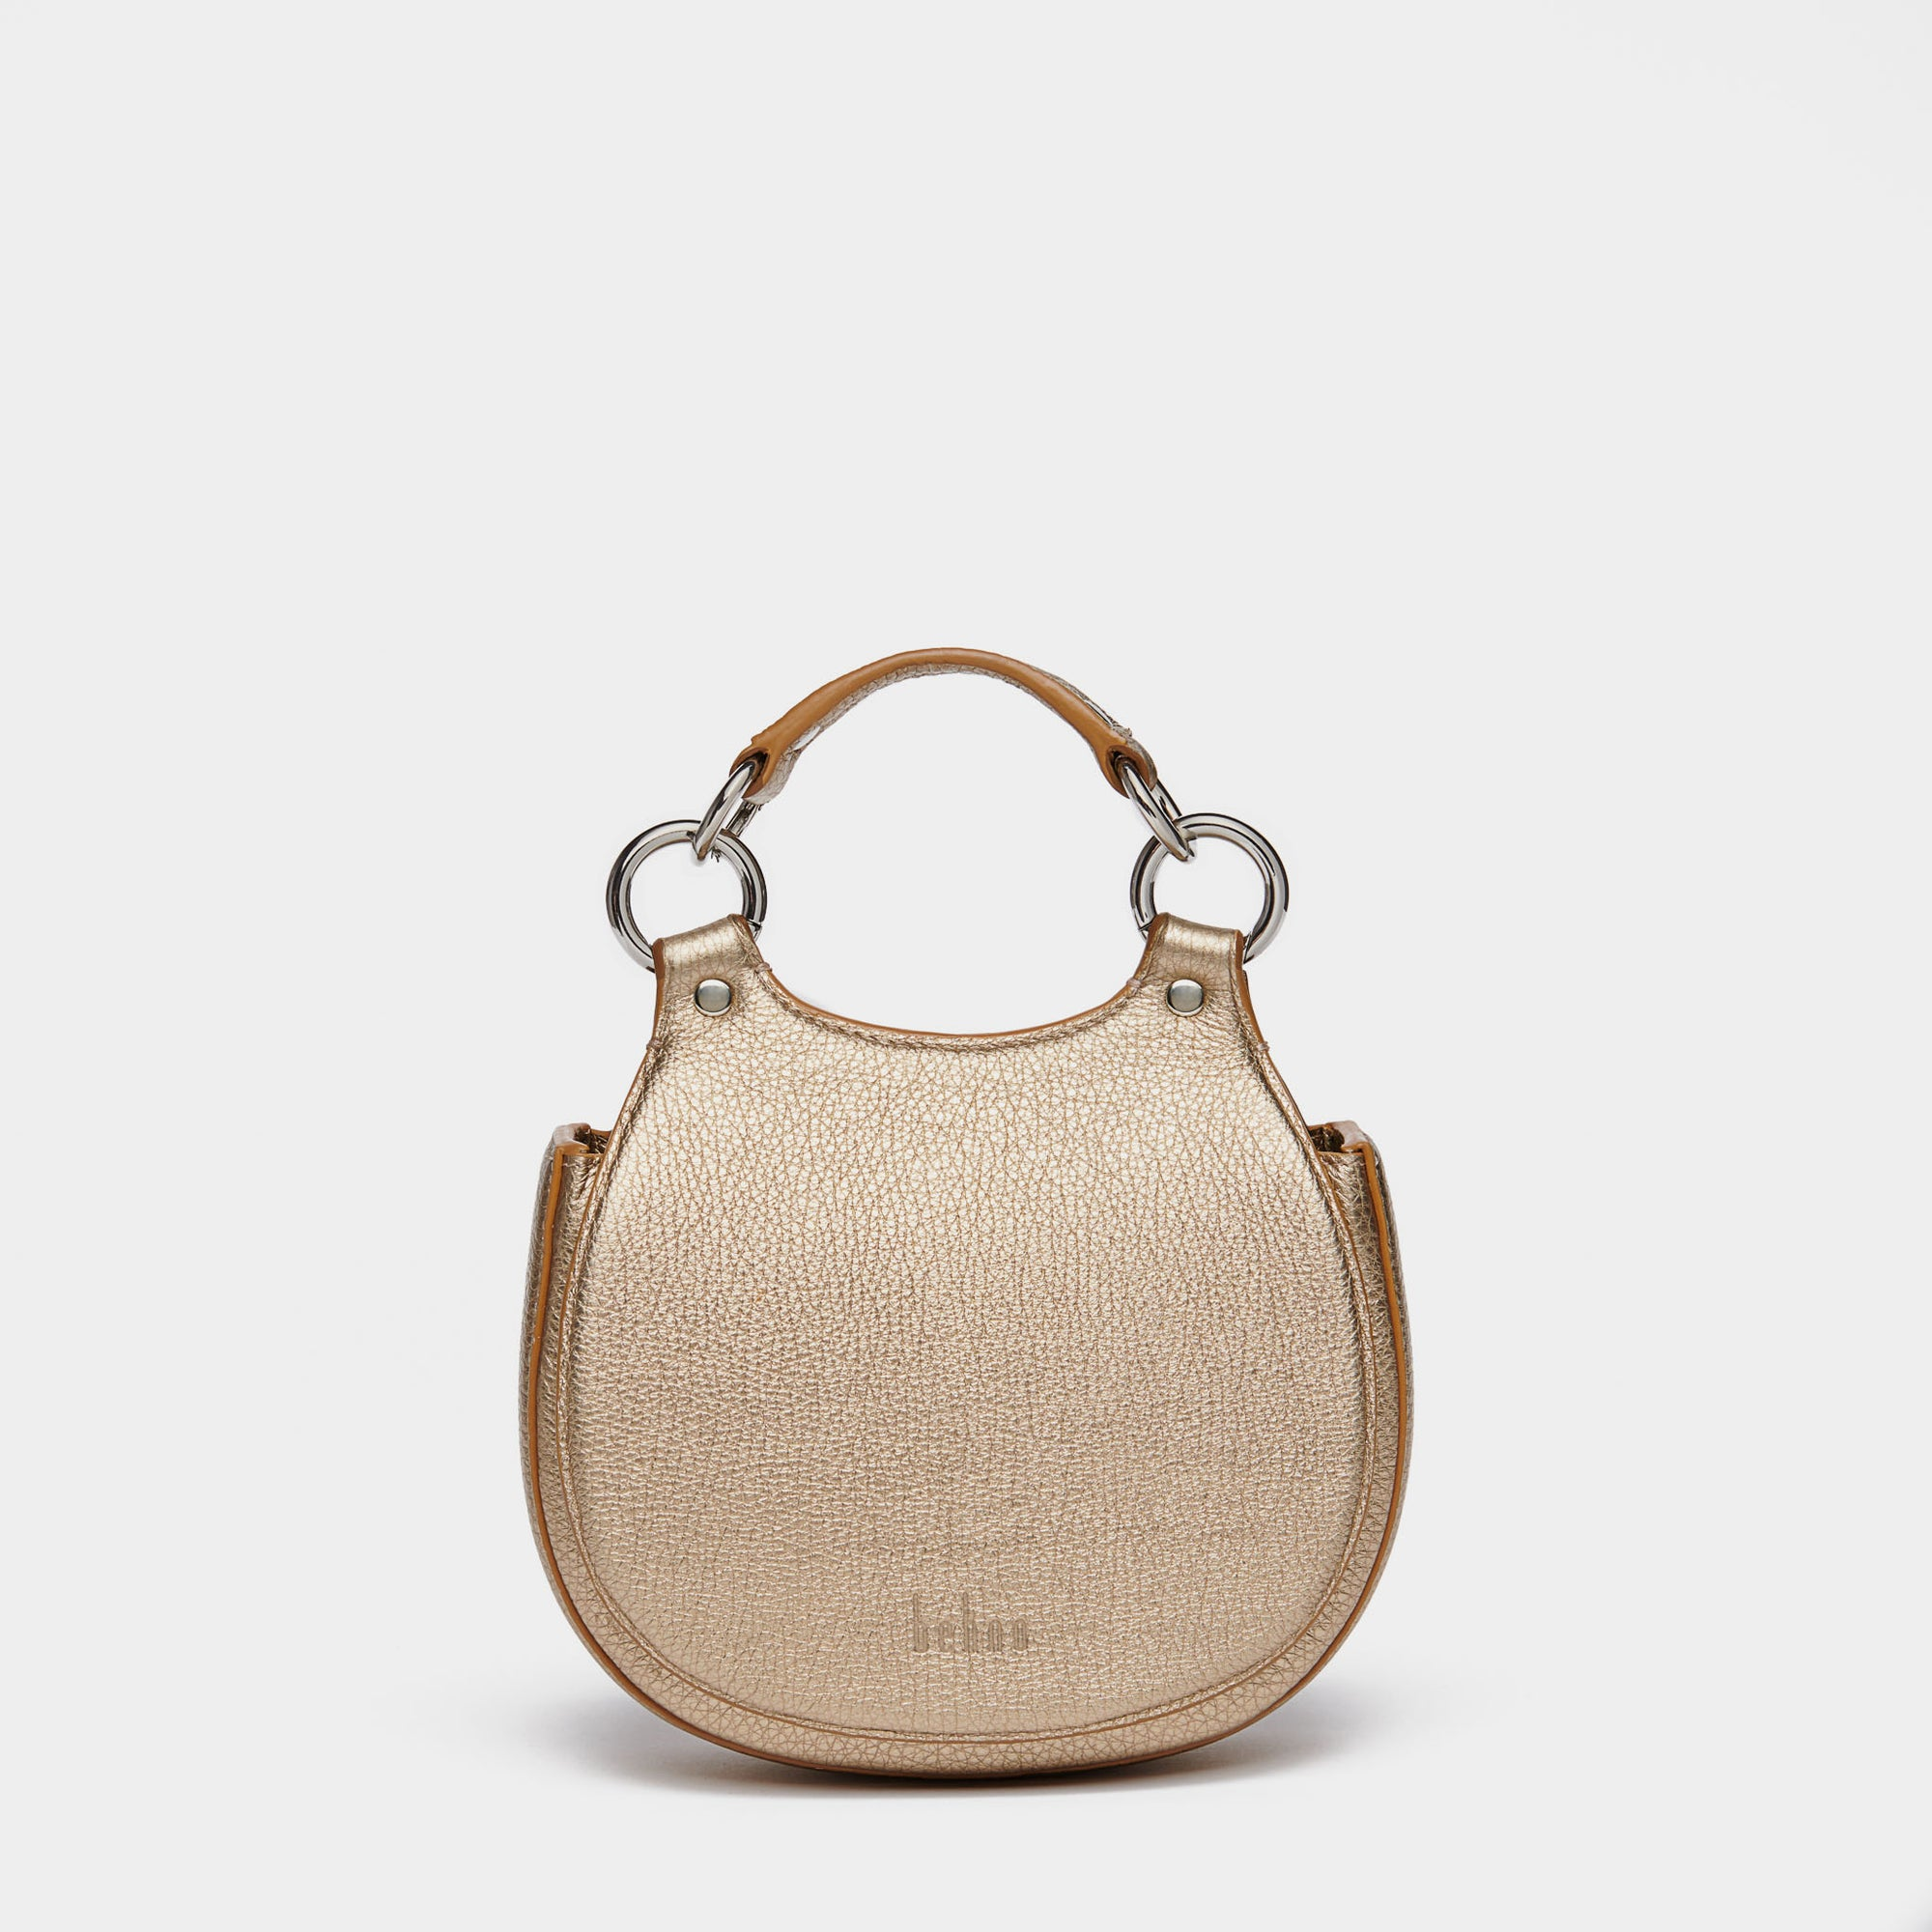 TILDA MINI SADDLE BAG PEBBLE GOLD